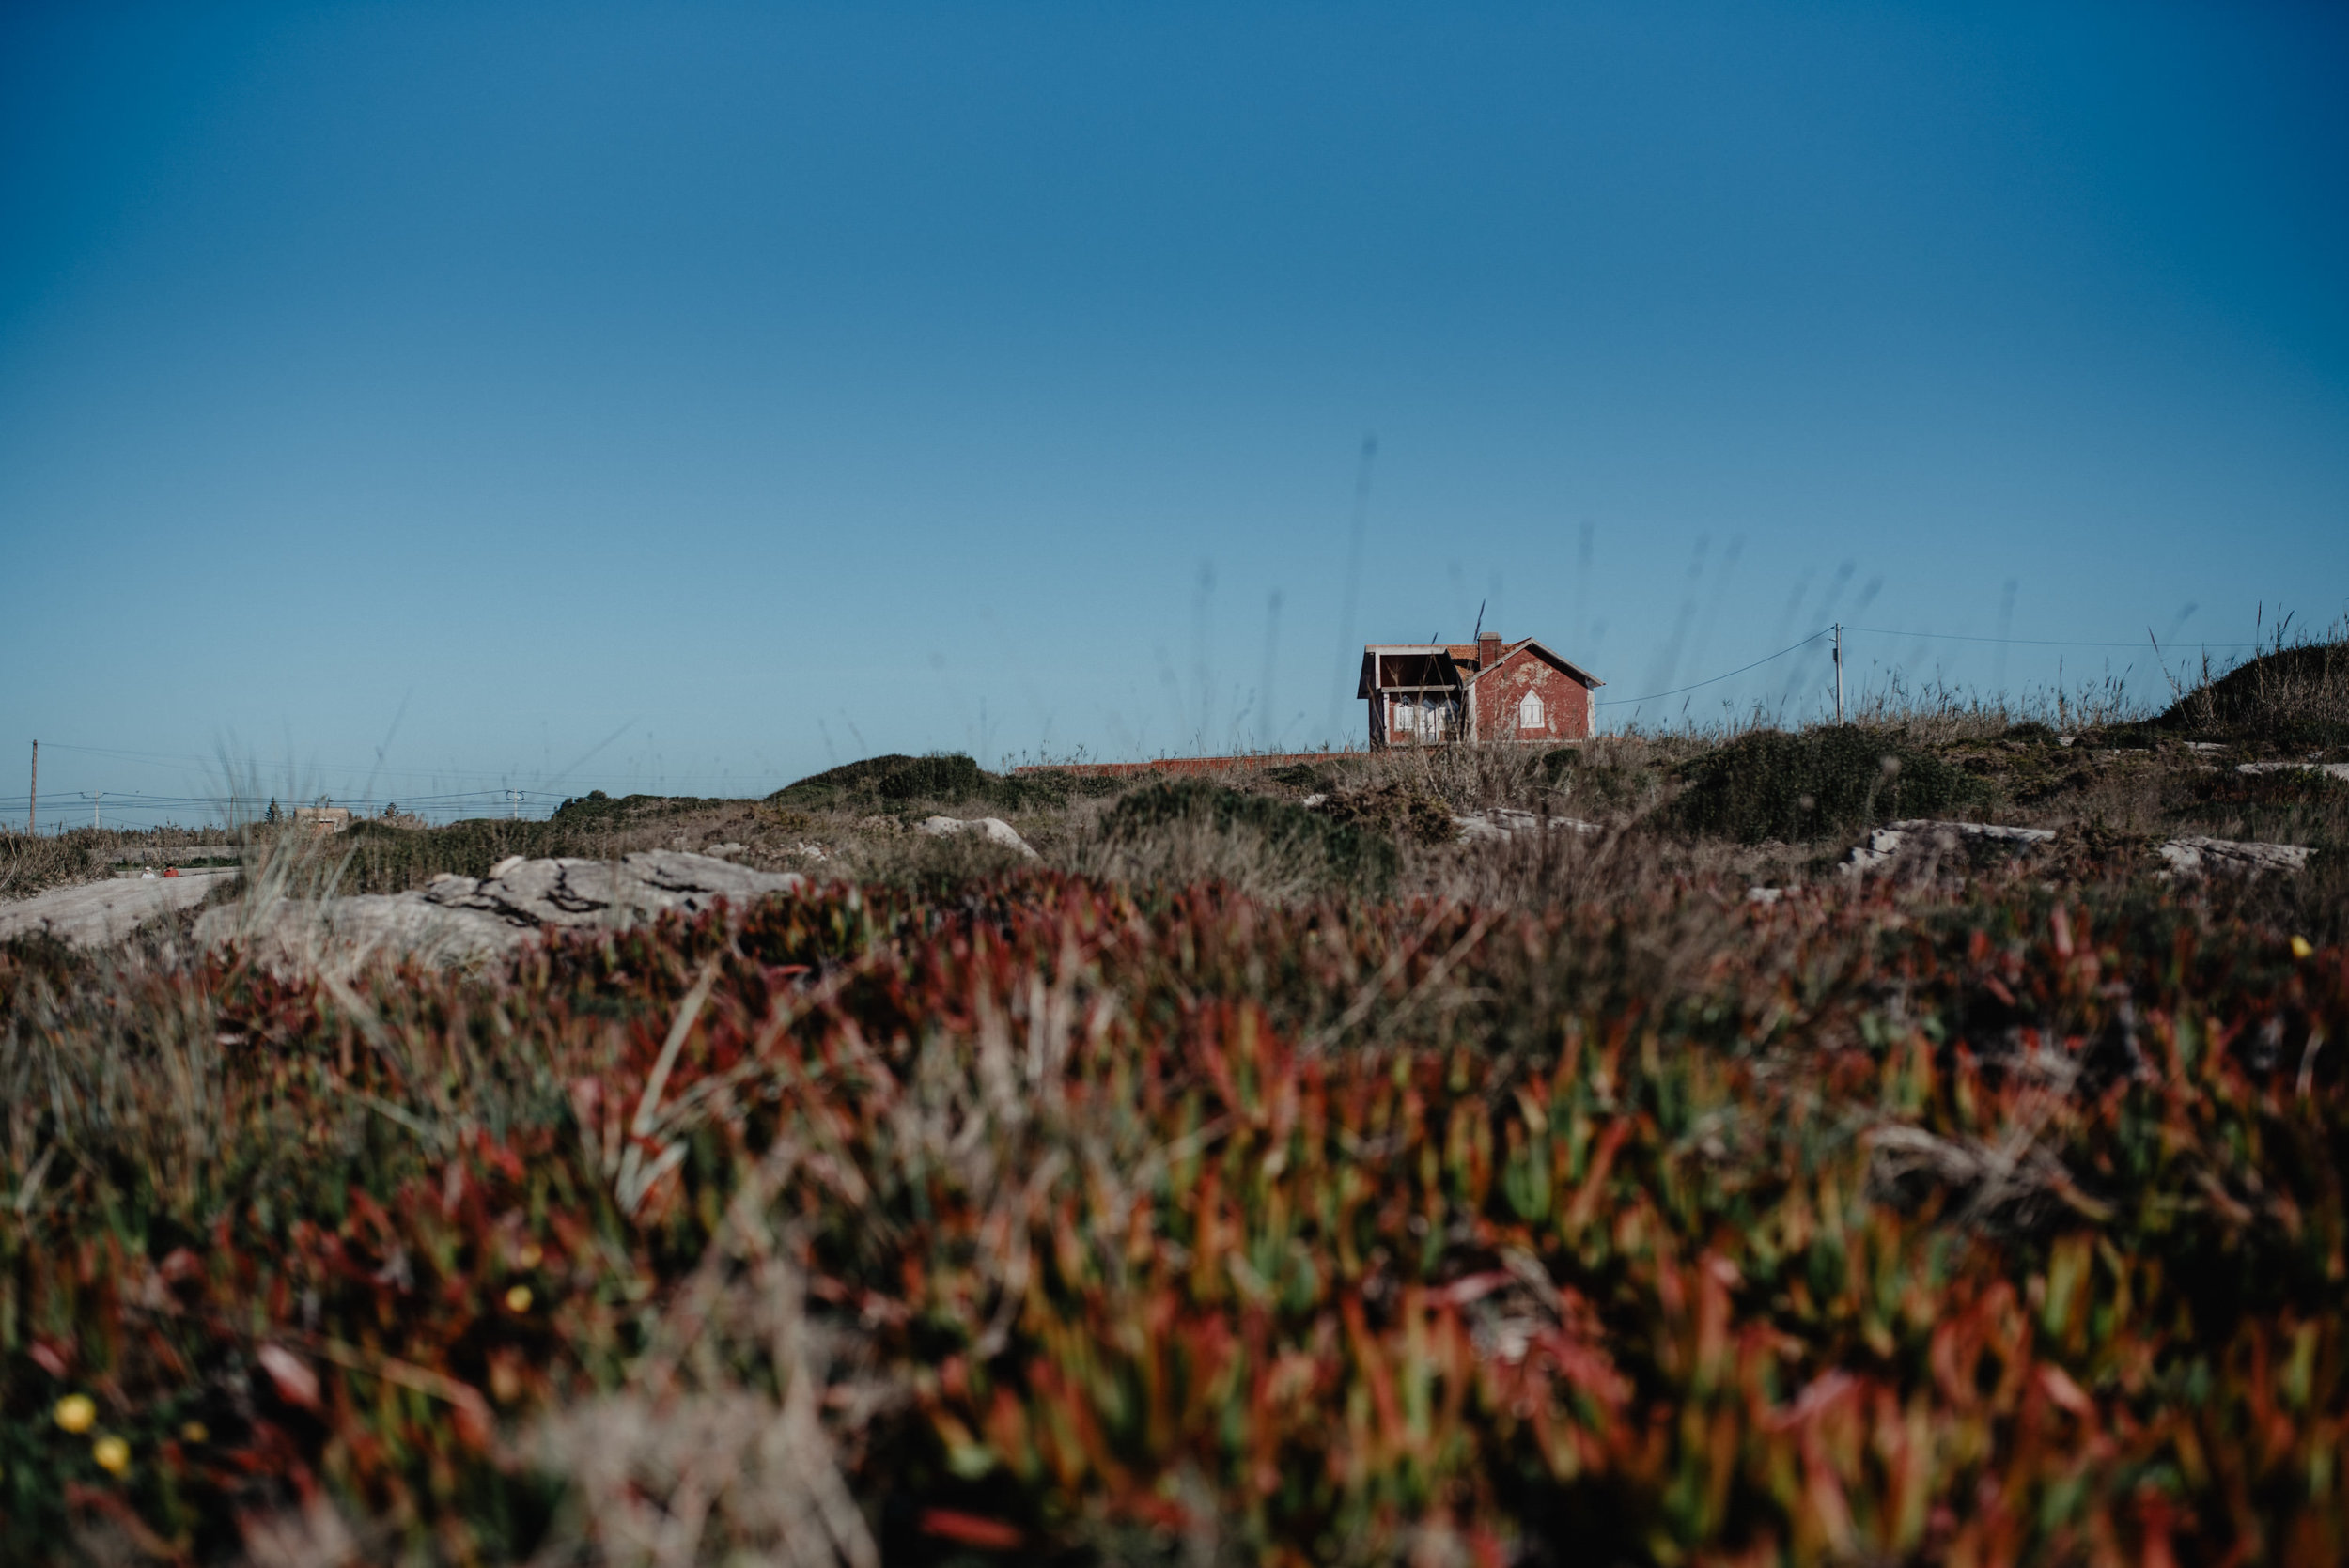 Portugal-Miss Freckles Photography-11.jpg